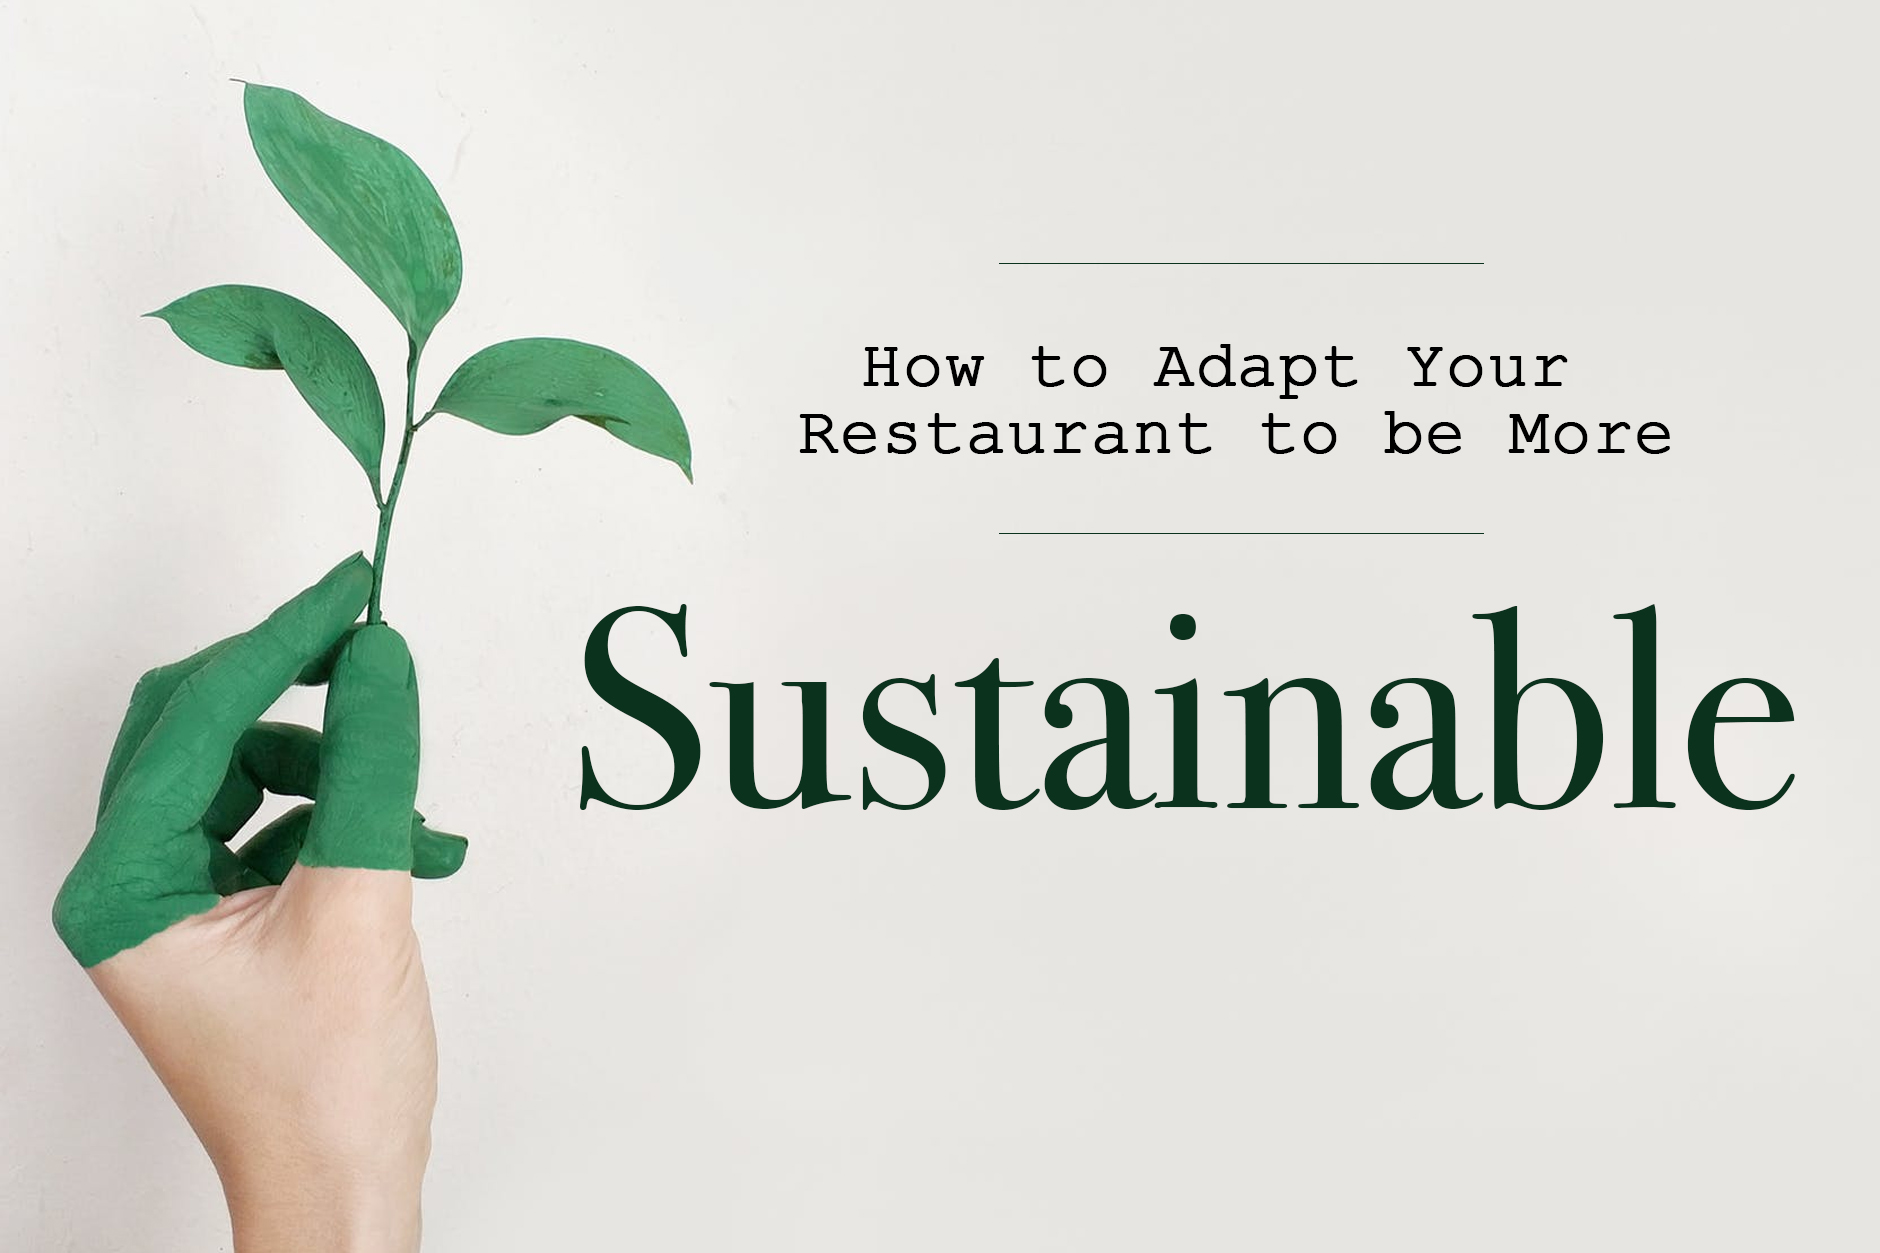 Sustainable Restaurants: Adapt To Be More Sustainable